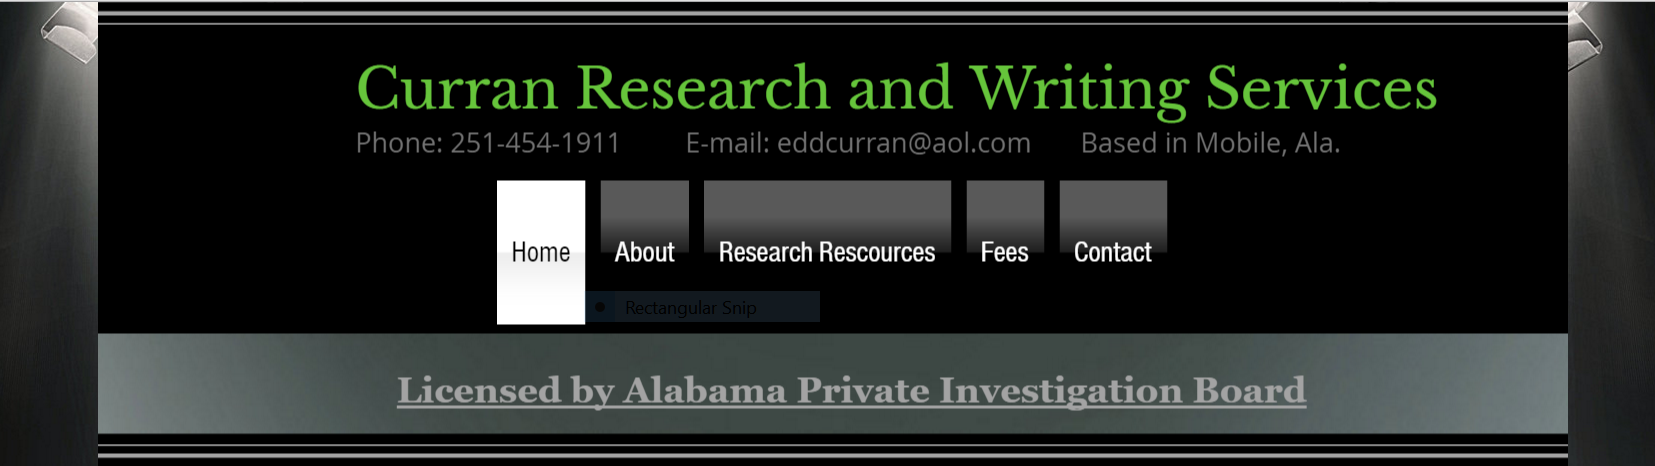 Curran Research and Writing Banner